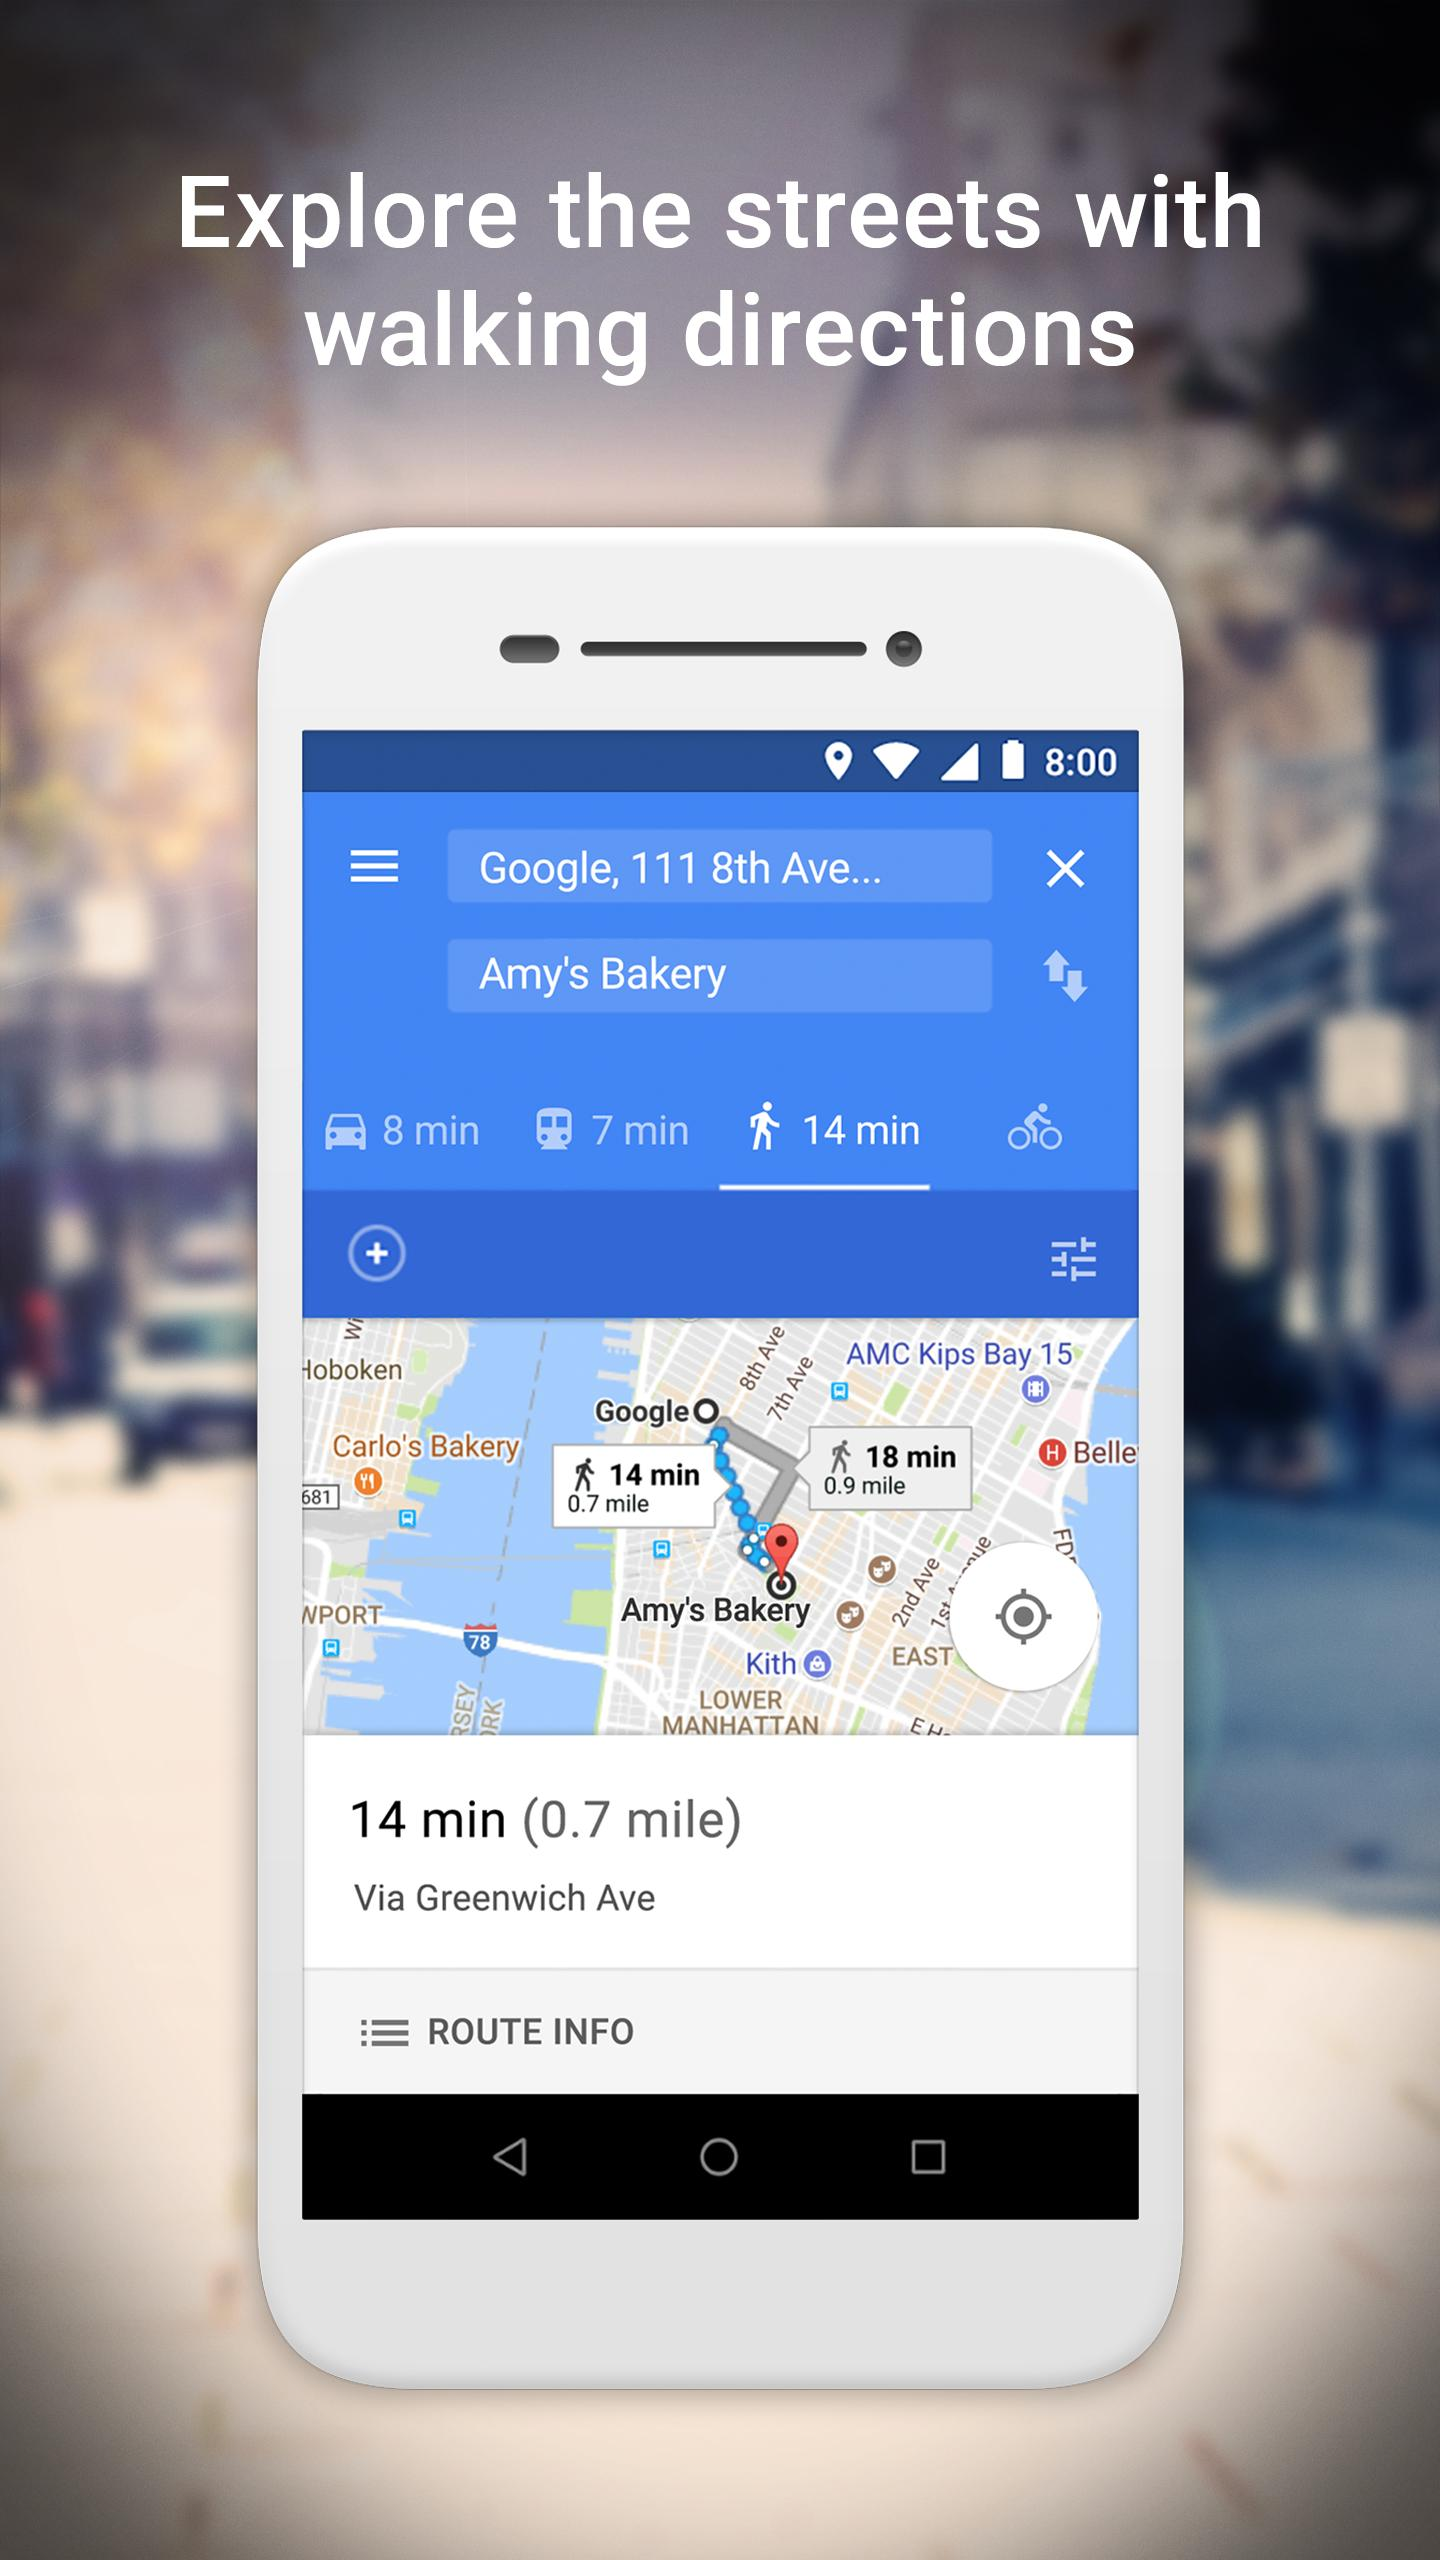 Google Maps Go - Directions, Traffic & Transit for Android ... on google chrome, google goggles, go to mail, google search, go to settings, go to internet, go to ebay, yahoo! maps, google earth, go to amazon, google docs, web mapping, google translate, go to home, go to netflix, google moon, google street view, go to facebook, satellite map images with missing or unclear data, google latitude, bing maps, route planning software, google mars, google sky, google voice, go to email, google map maker,